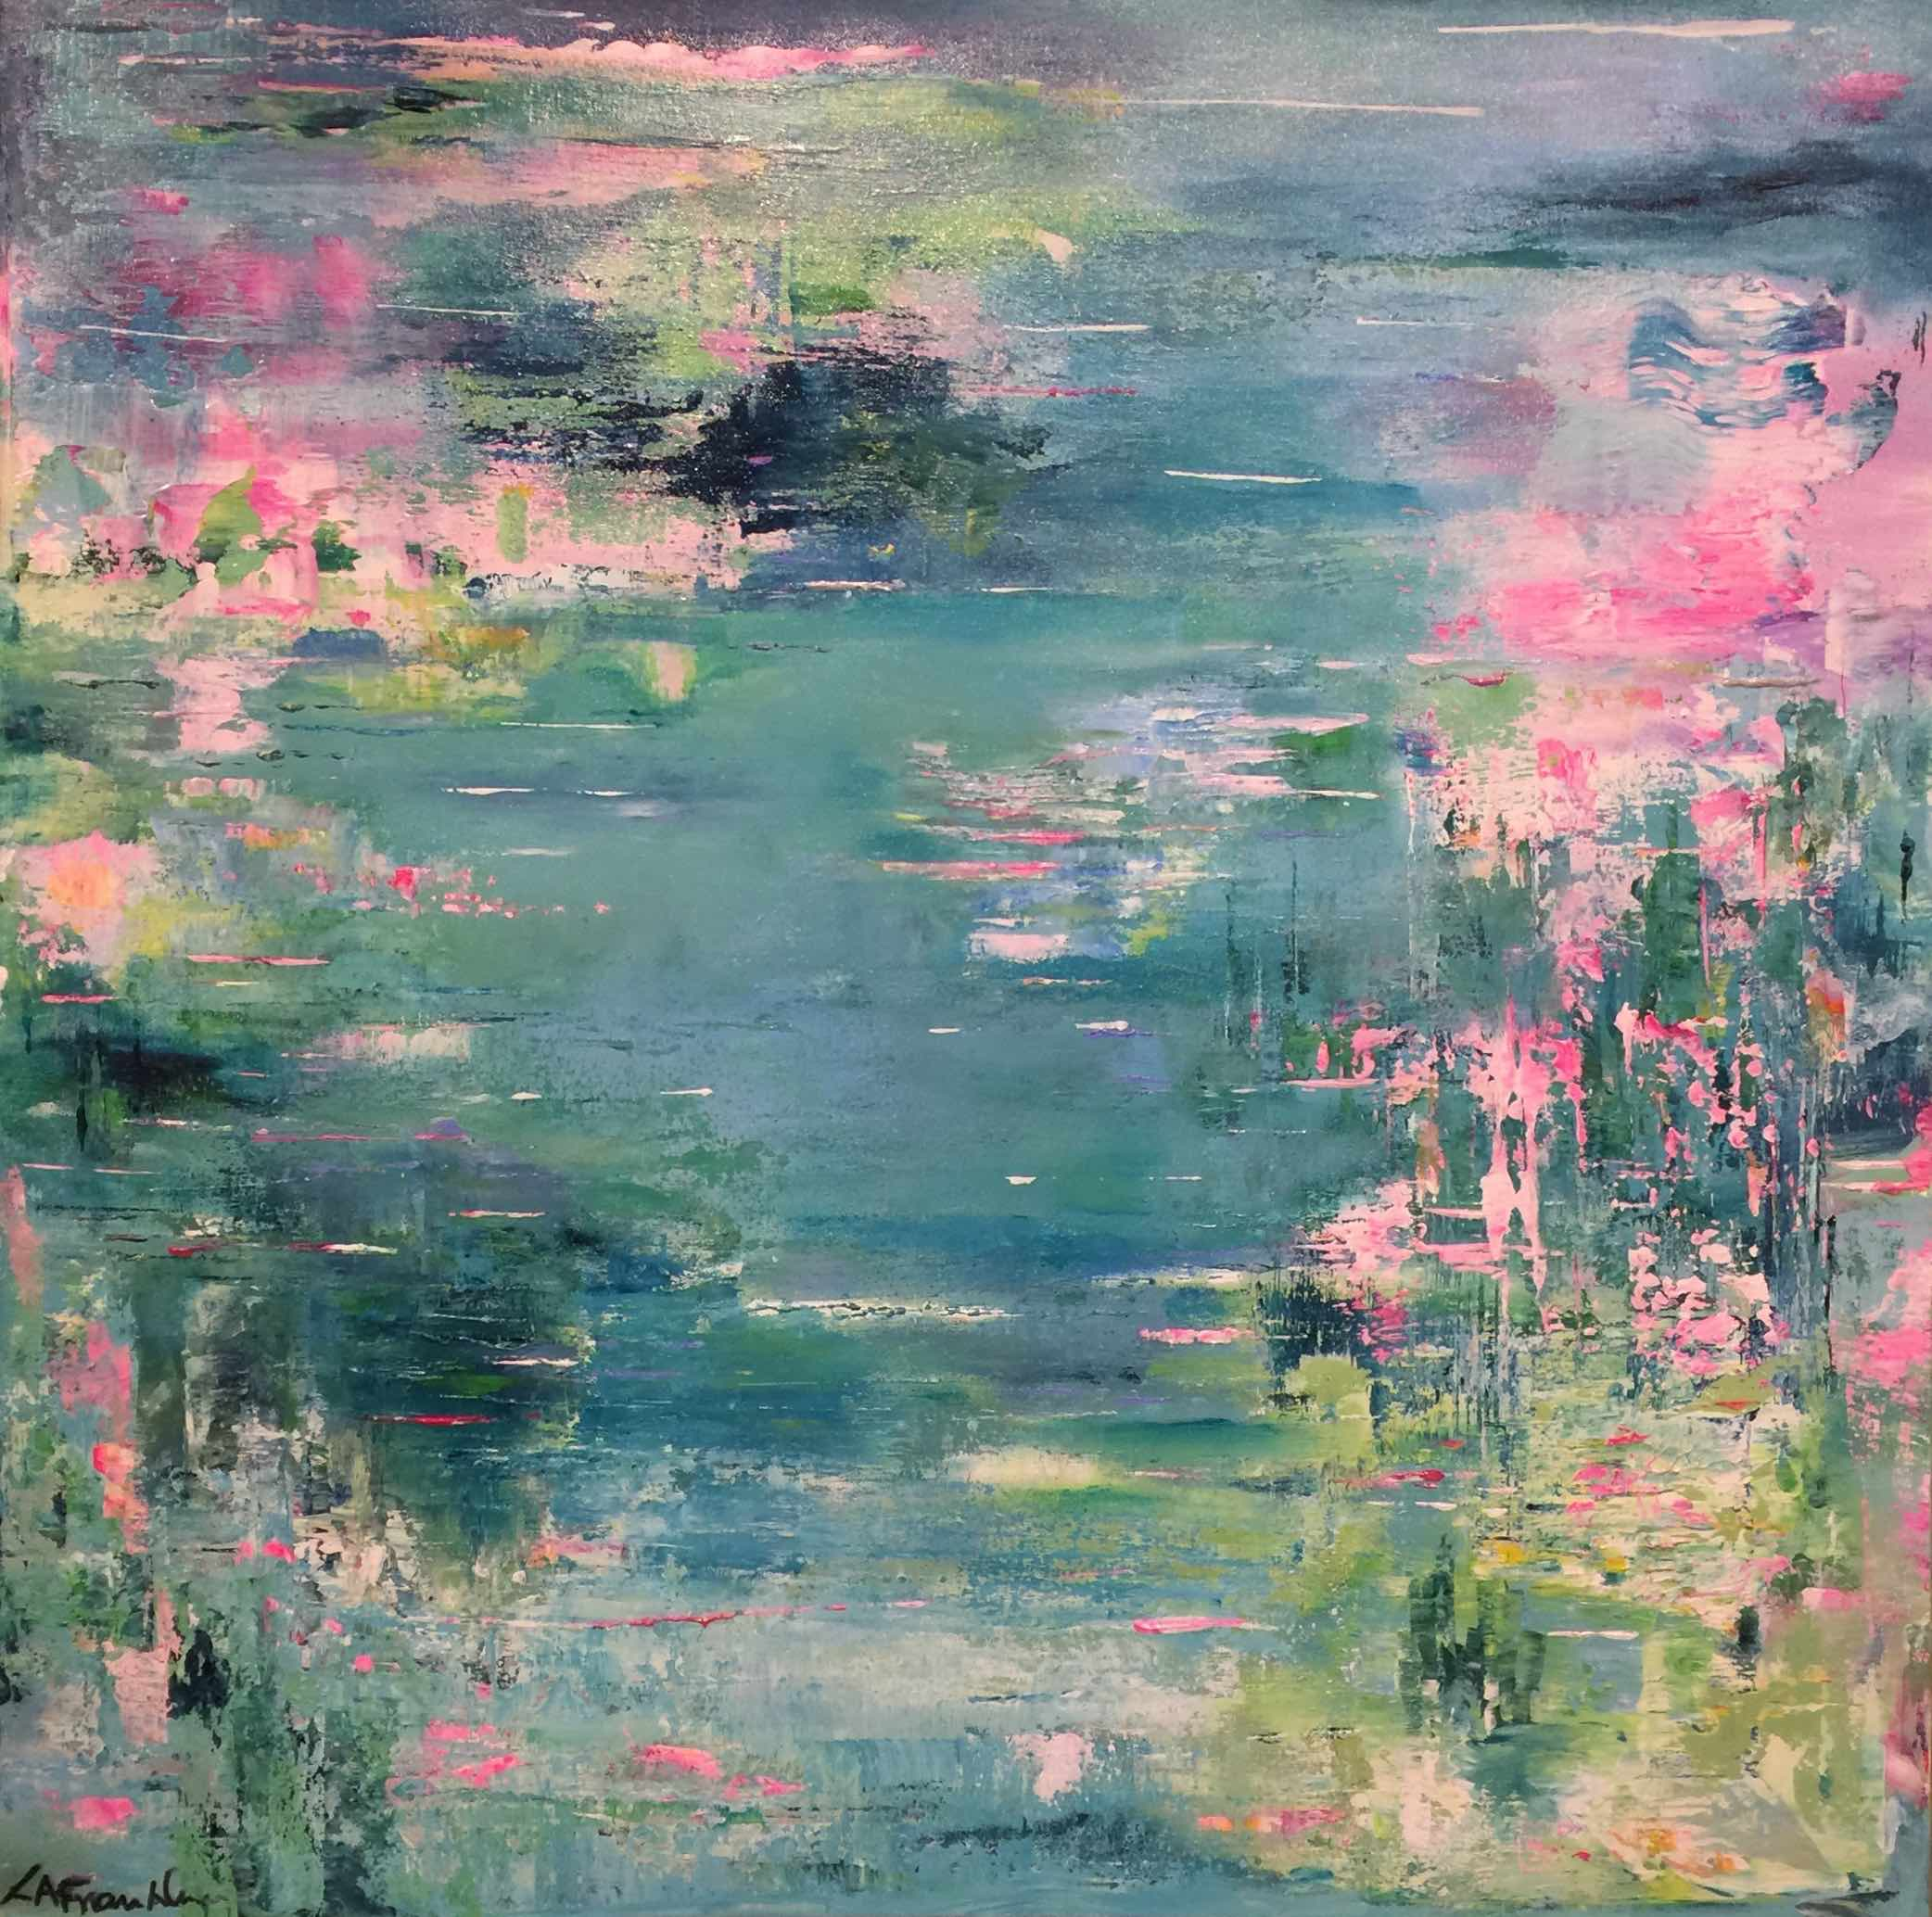 <span class=&#34;link fancybox-details-link&#34;><a href=&#34;/artists/38-linda-franklin/works/2133-linda-franklin-chasing-the-blues-in-hong-kong/&#34;>View Detail Page</a></span><div class=&#34;artist&#34;><strong>Linda Franklin</strong></div> <div class=&#34;title&#34;><em>Chasing The Blues</em>, In Hong Kong</div> <div class=&#34;medium&#34;>Mixed Media on Canvas</div> <div class=&#34;dimensions&#34;>90 x 90 cm</div><div class=&#34;copyright_line&#34;>Copyright The Artist</div>